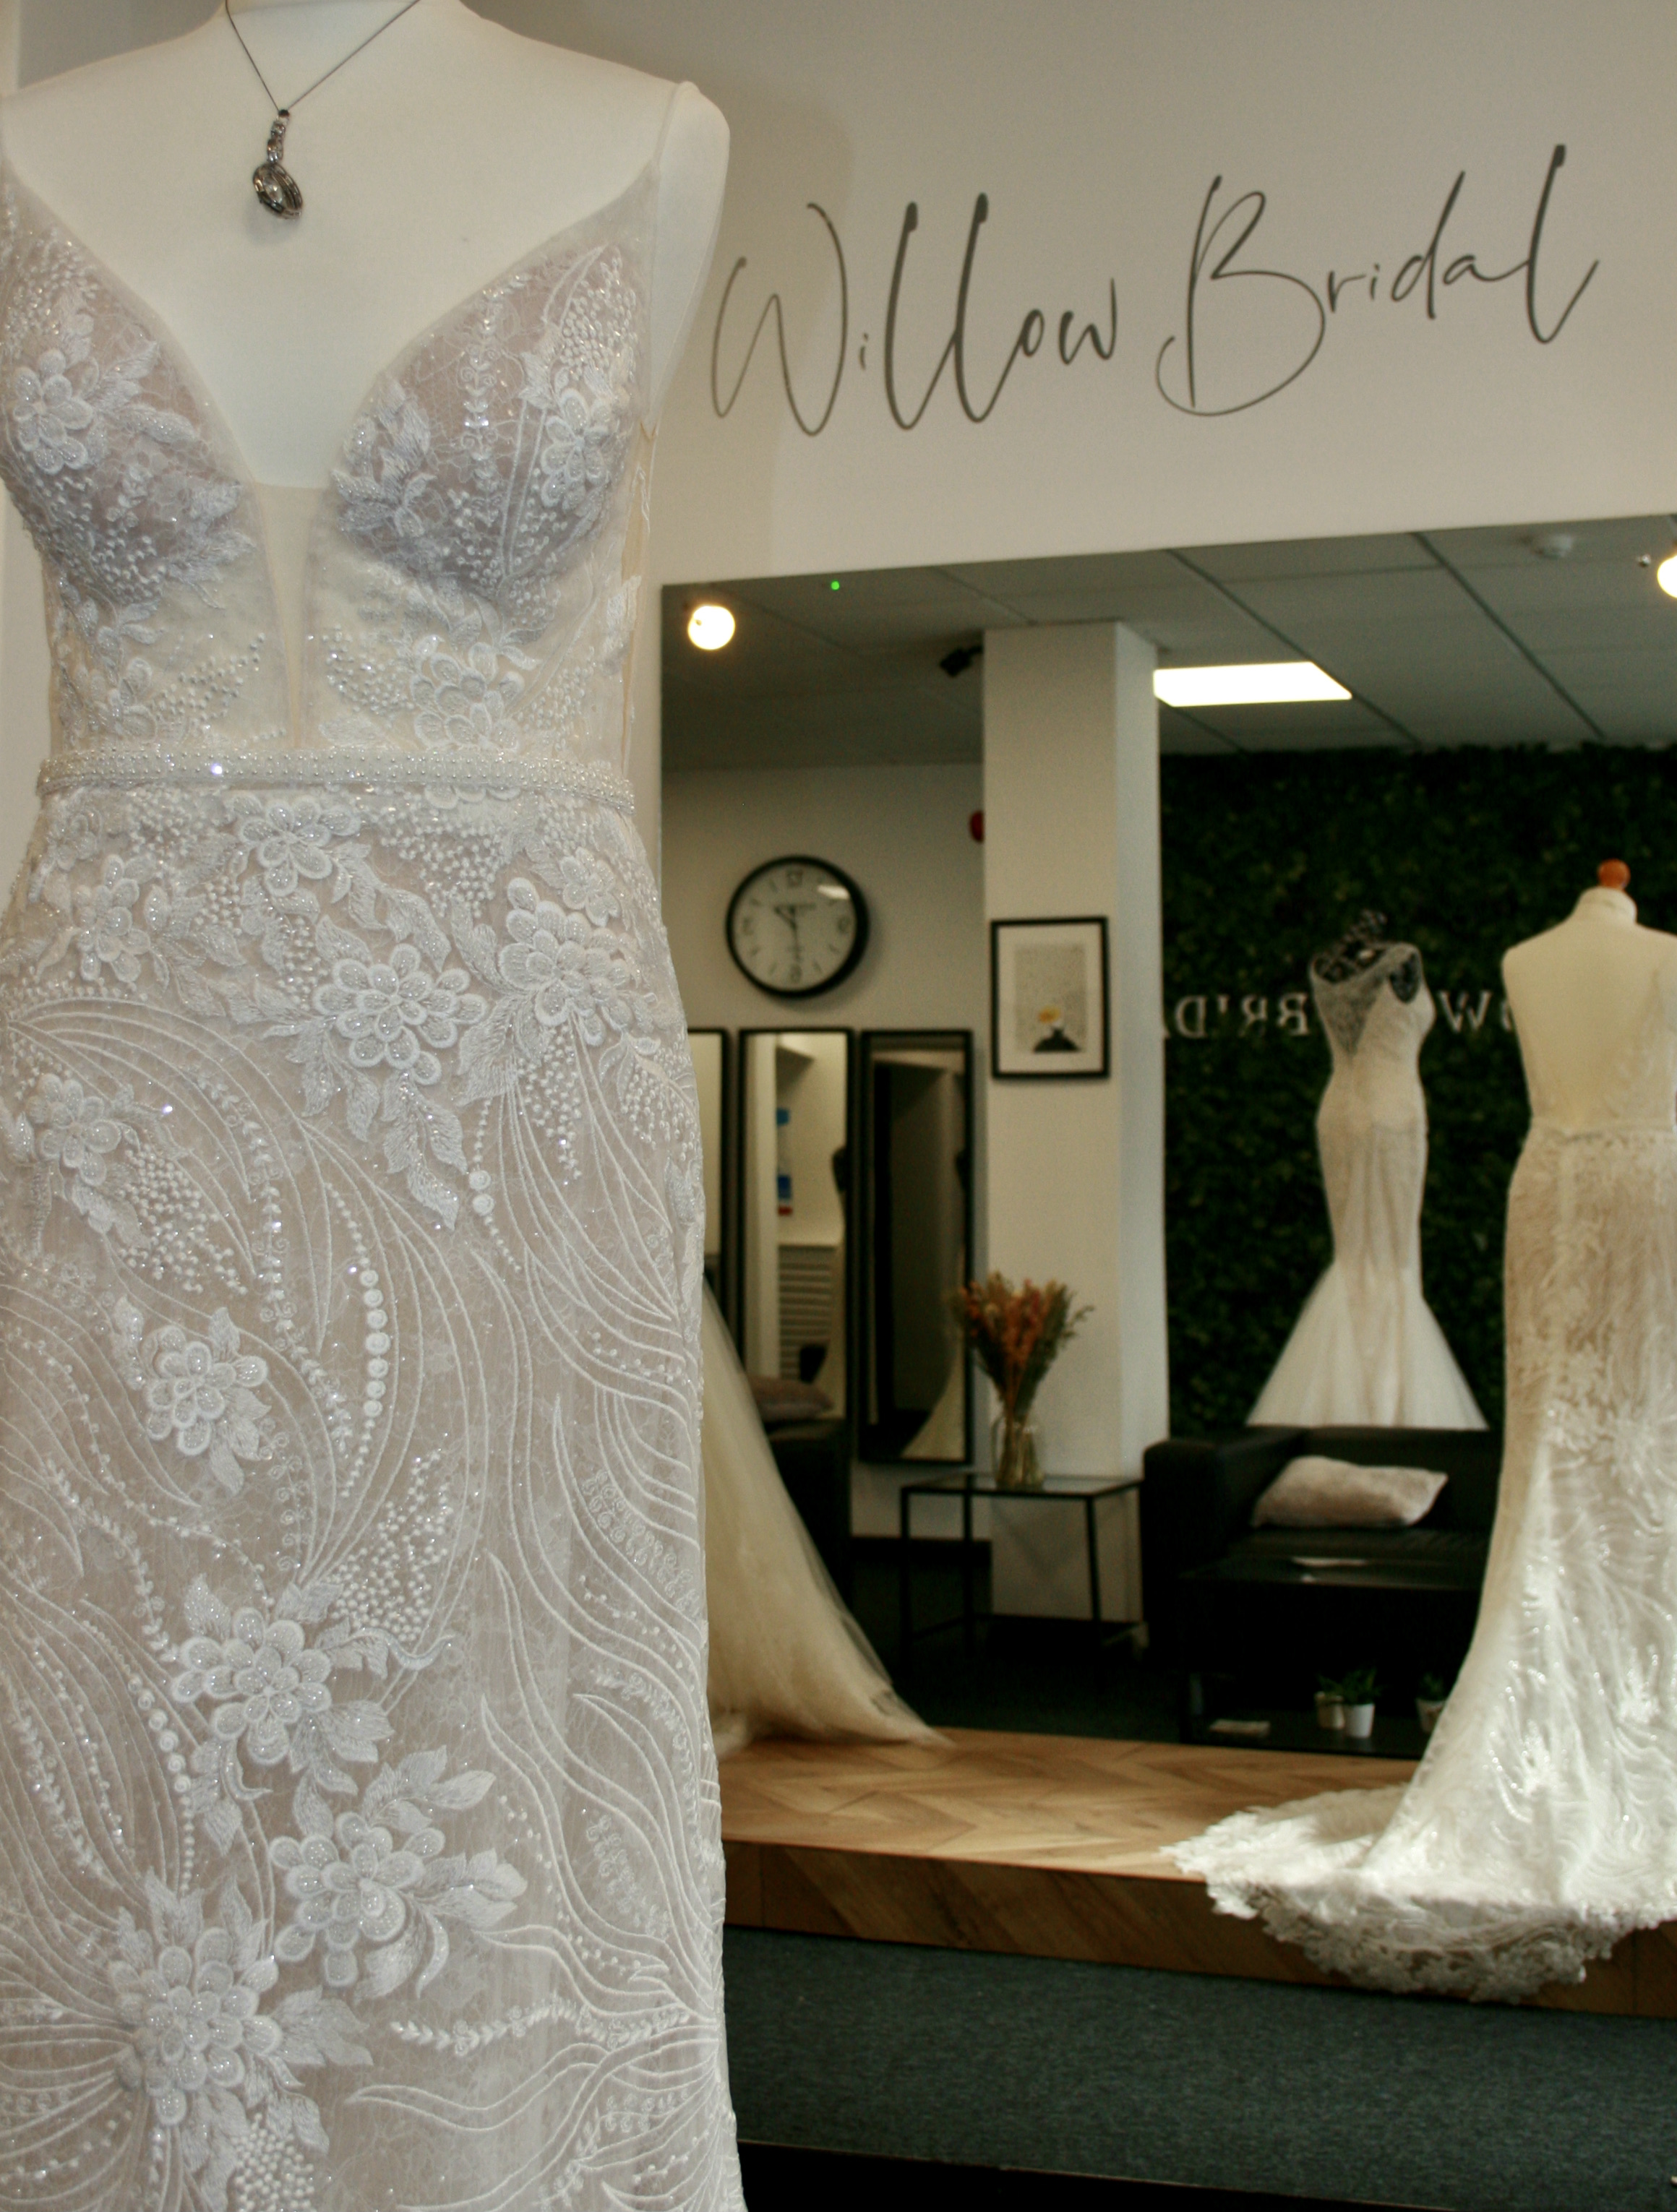 Bridal Showroom   Willow Bridal   Couture Bridal Cheshire